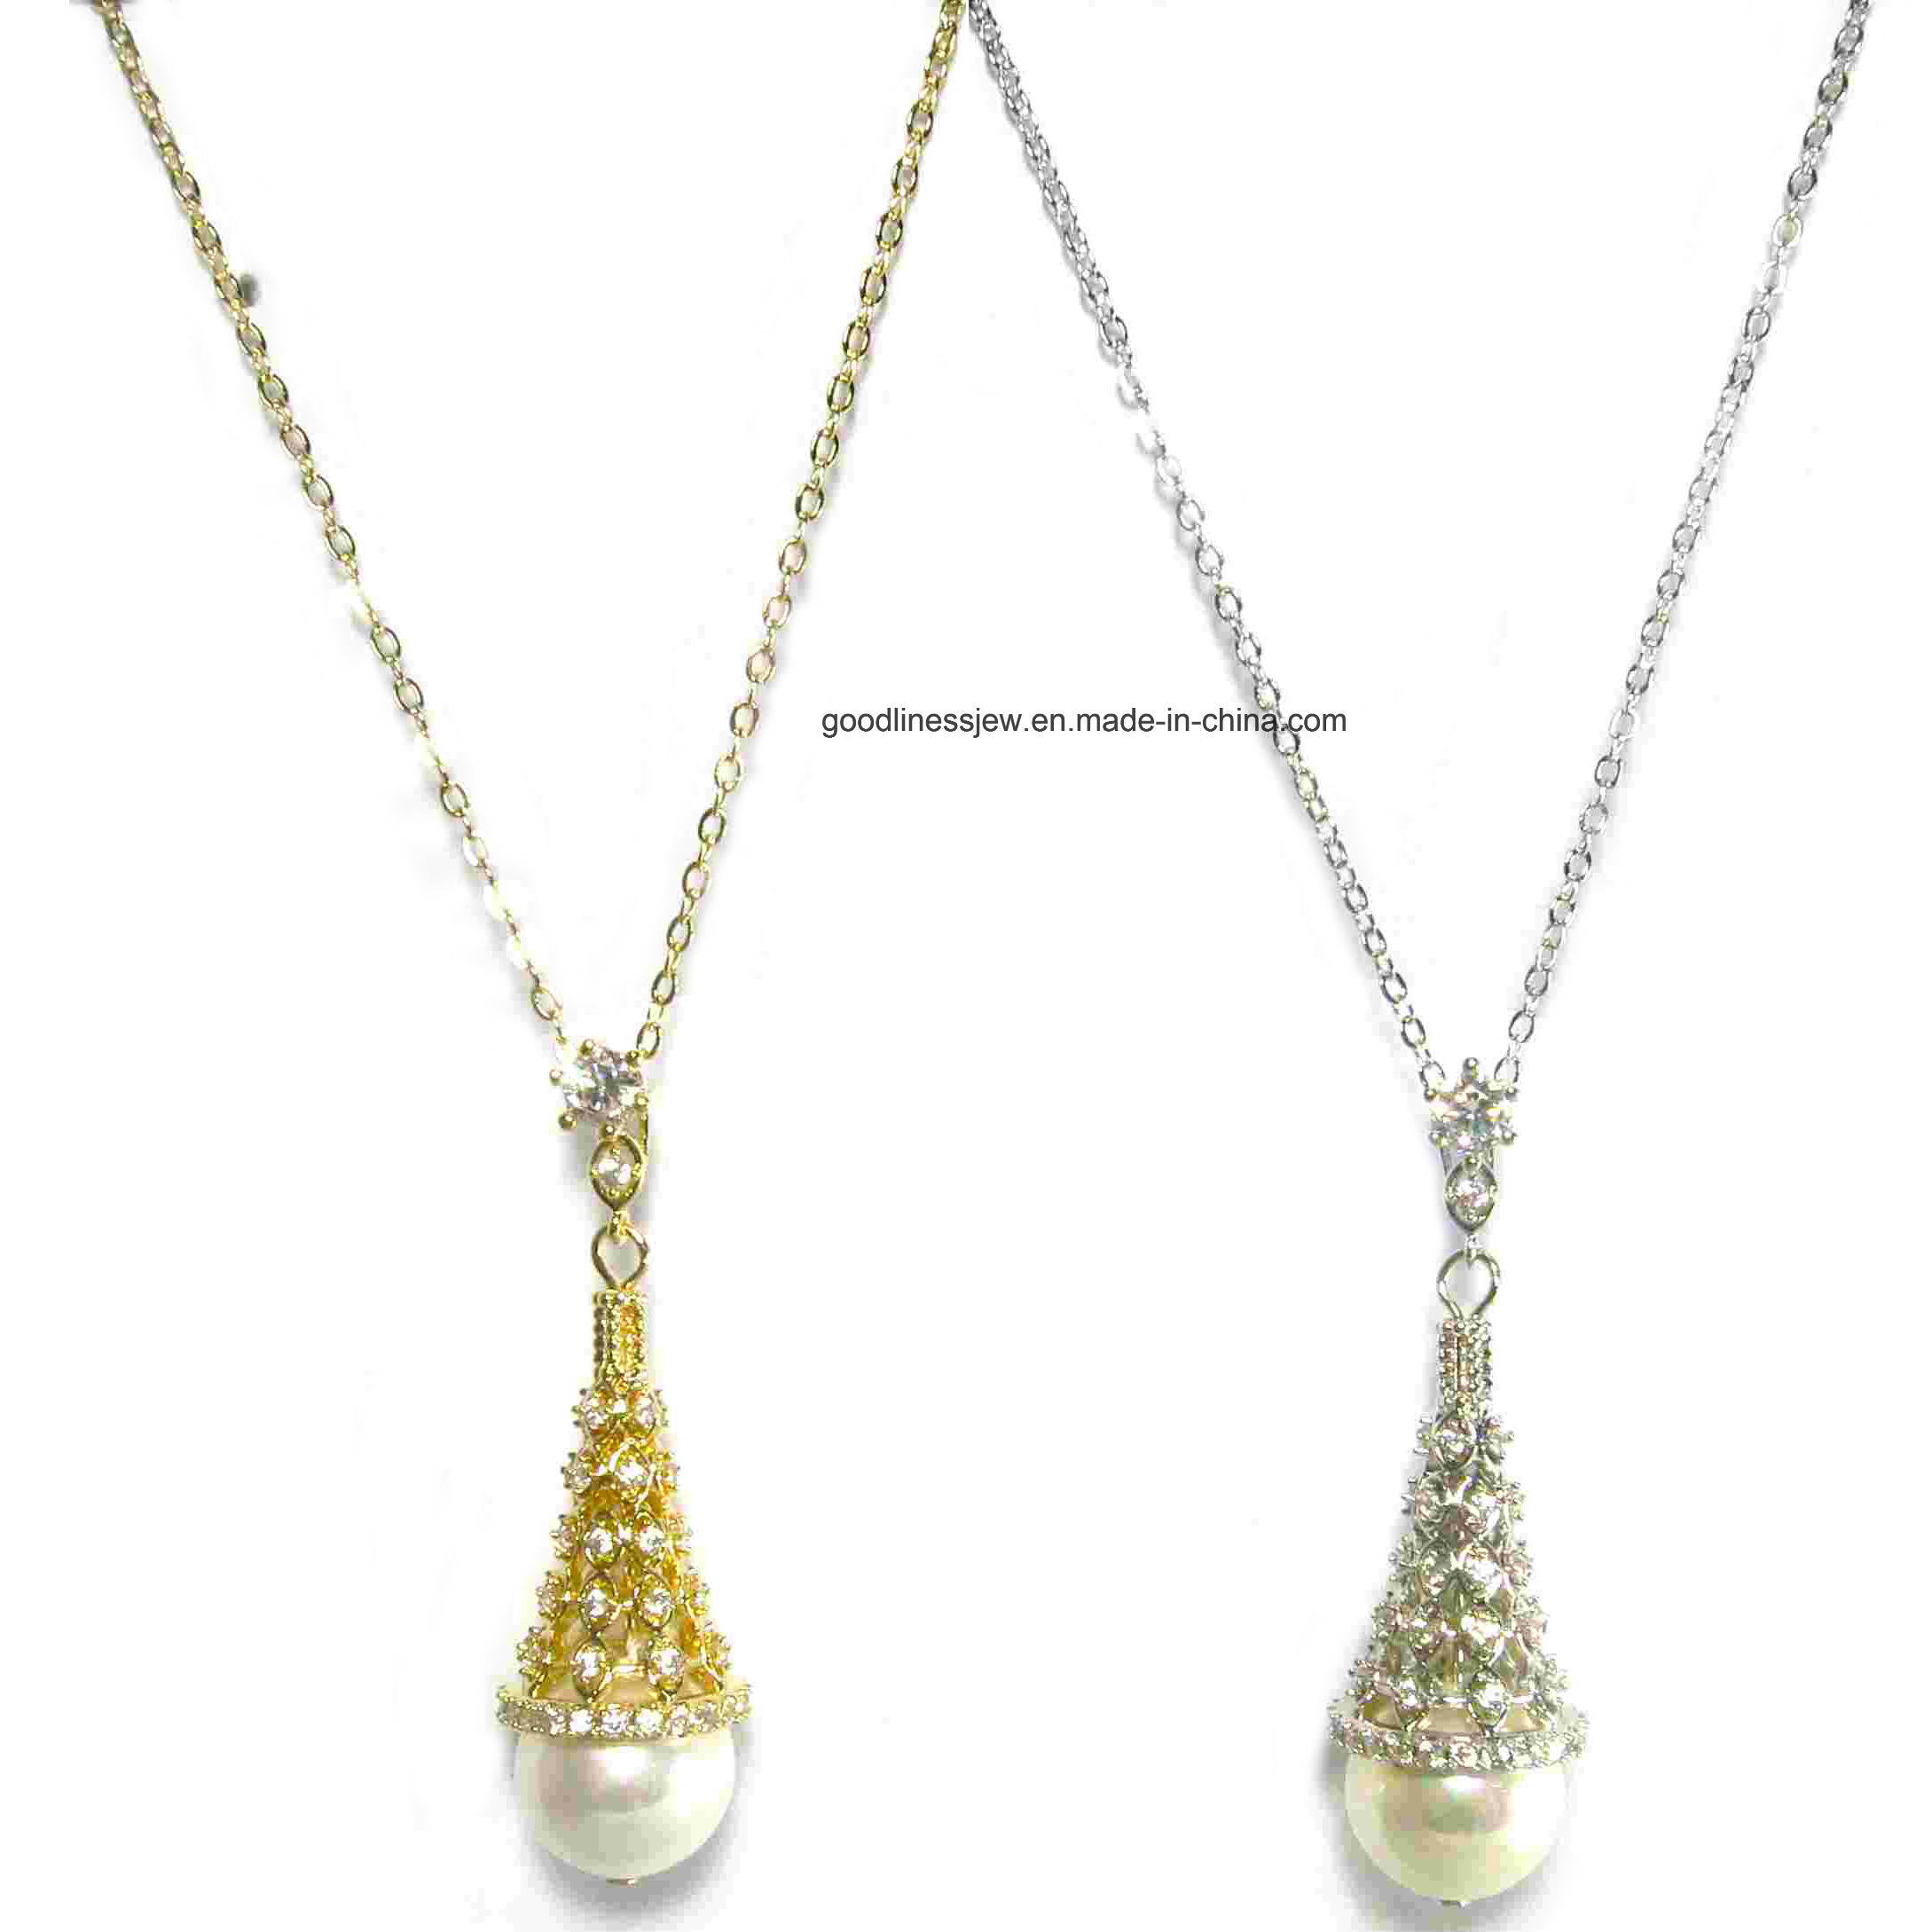 Jewelry Necklace Beaded Imitation Pearl Crystal Pendant Necklace Woman Bridal Fashion Jewellery Necklace Set 925 Sterling Silver Jewelry Chain Gold Necklace pictures & photos